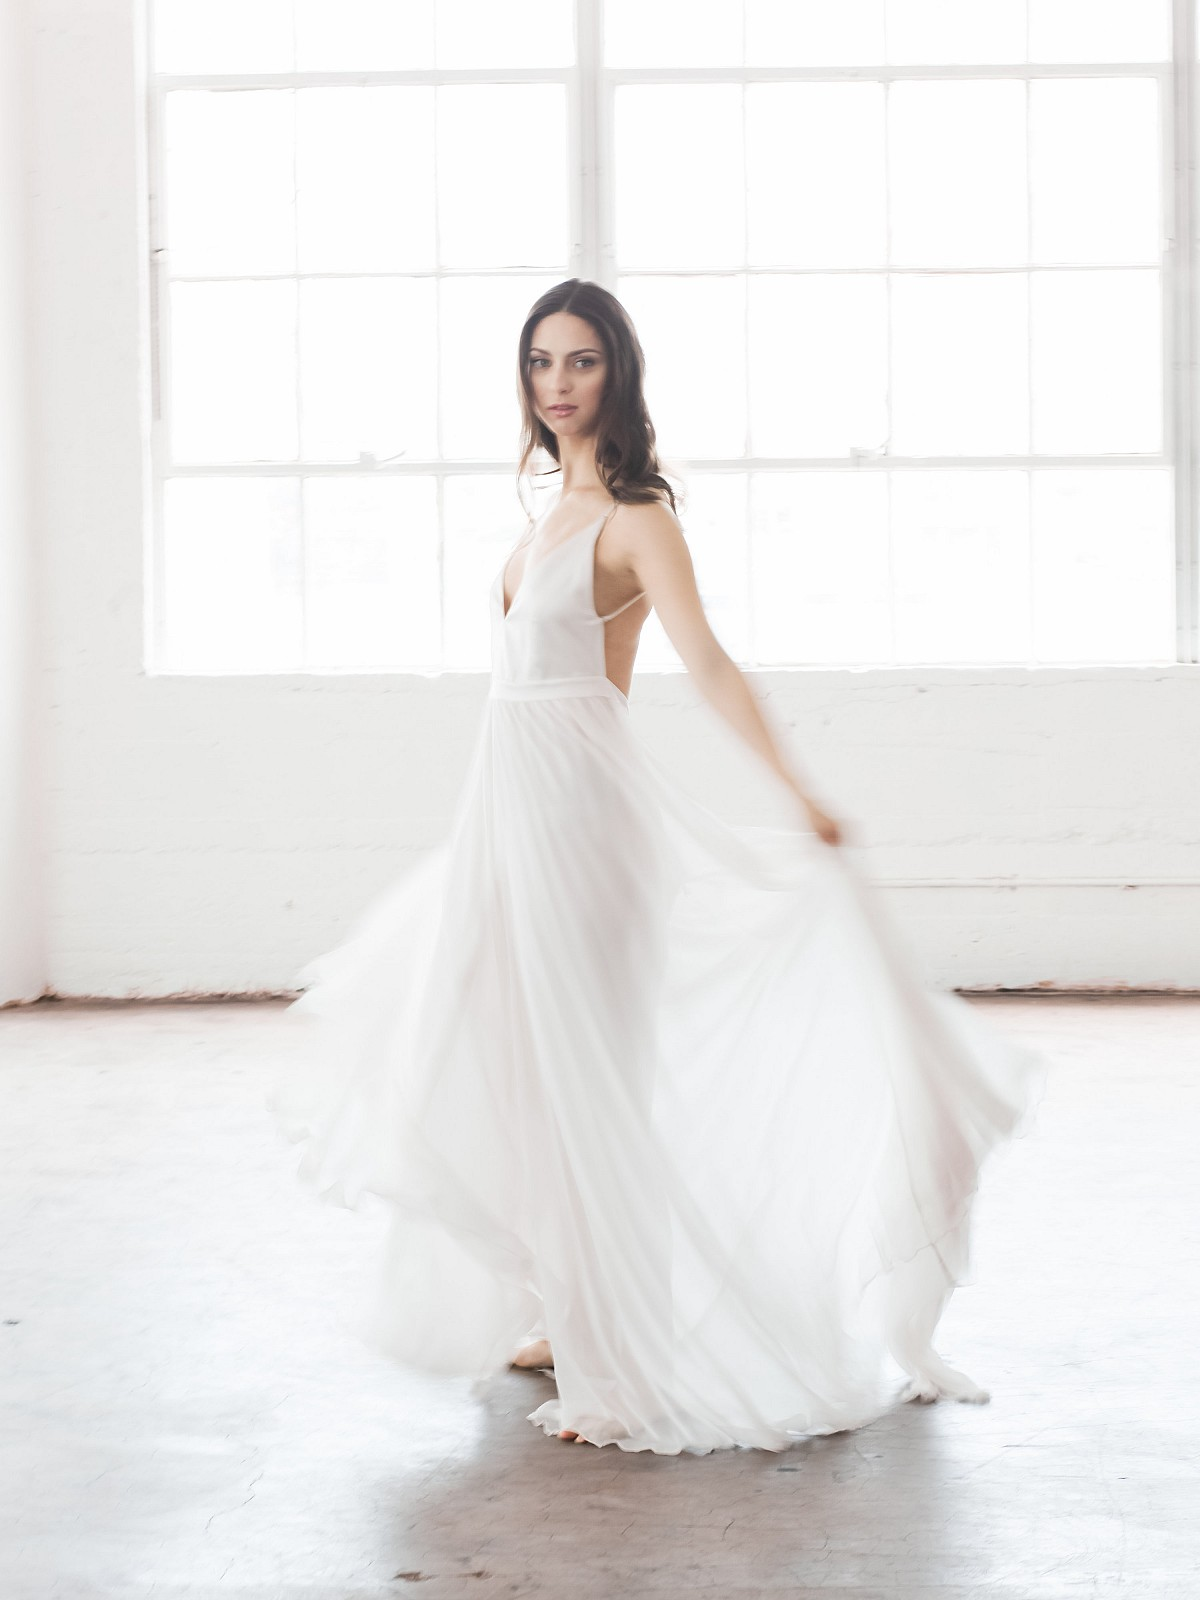 All White Ethereal Winter Bridals